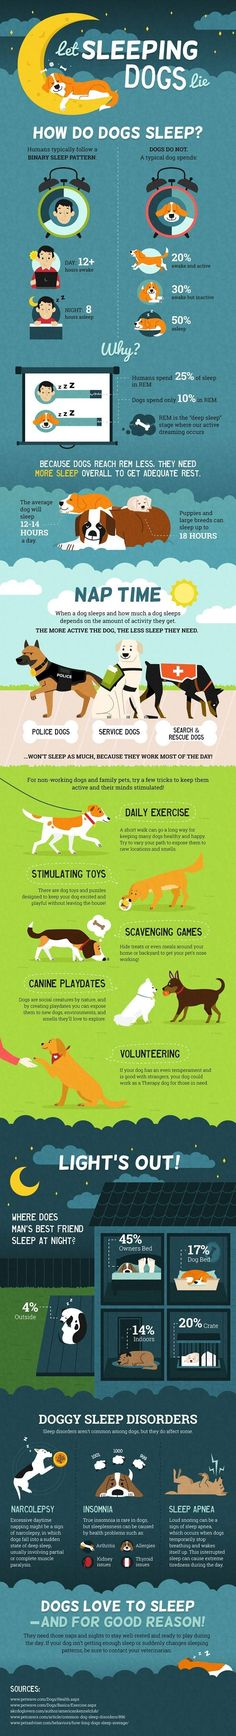 Dog Infographic: Let